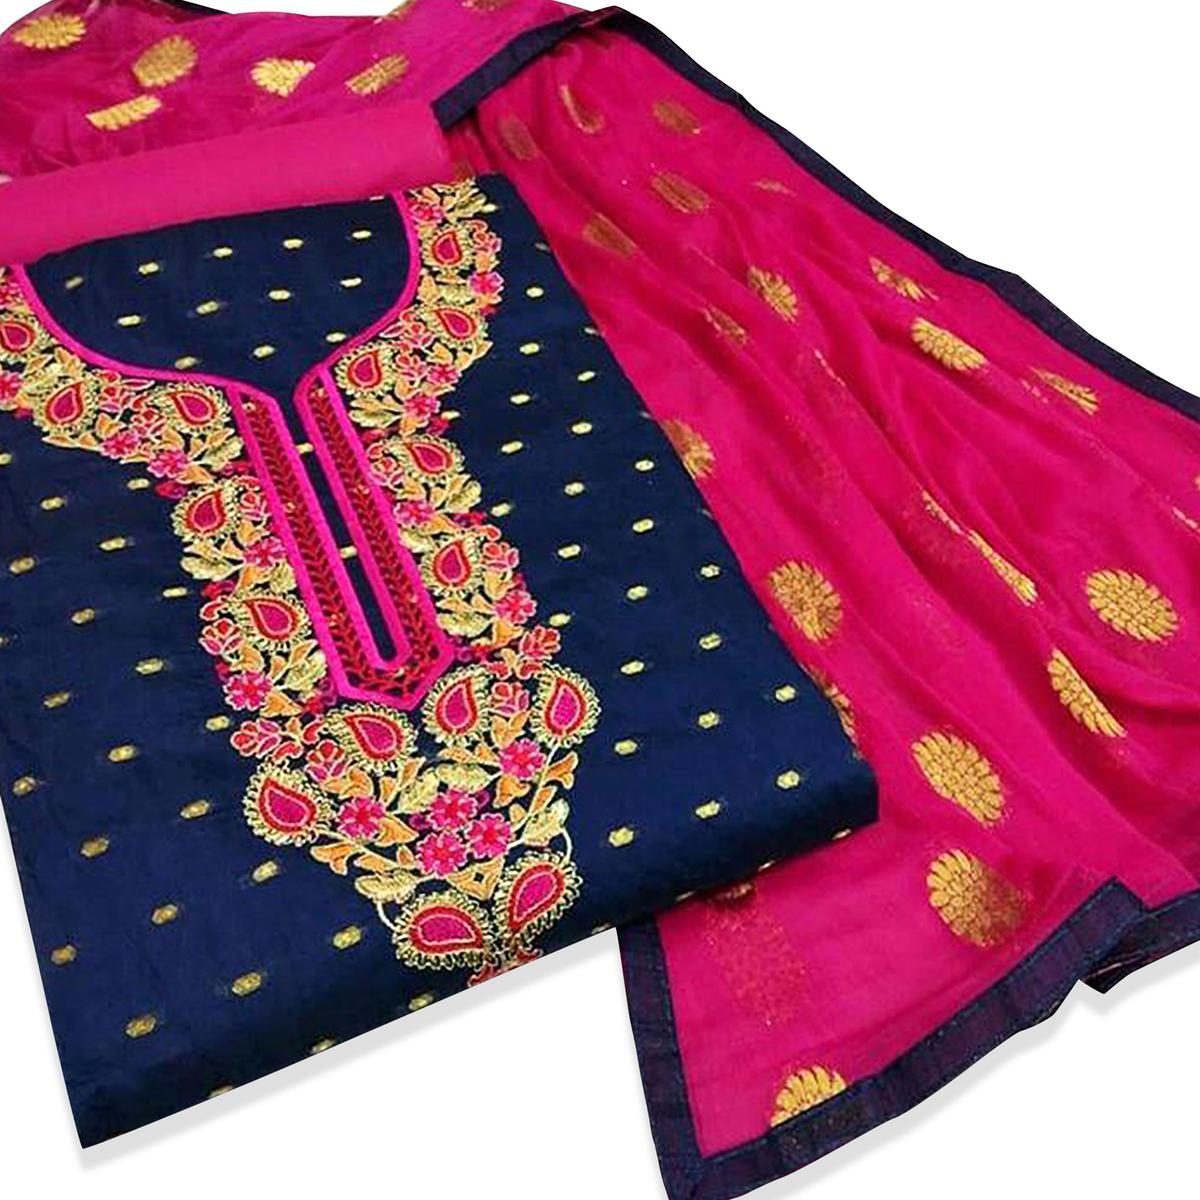 Appealing Navy Blue Colored Embroidered Partywear Chanderi Silk Dress Material